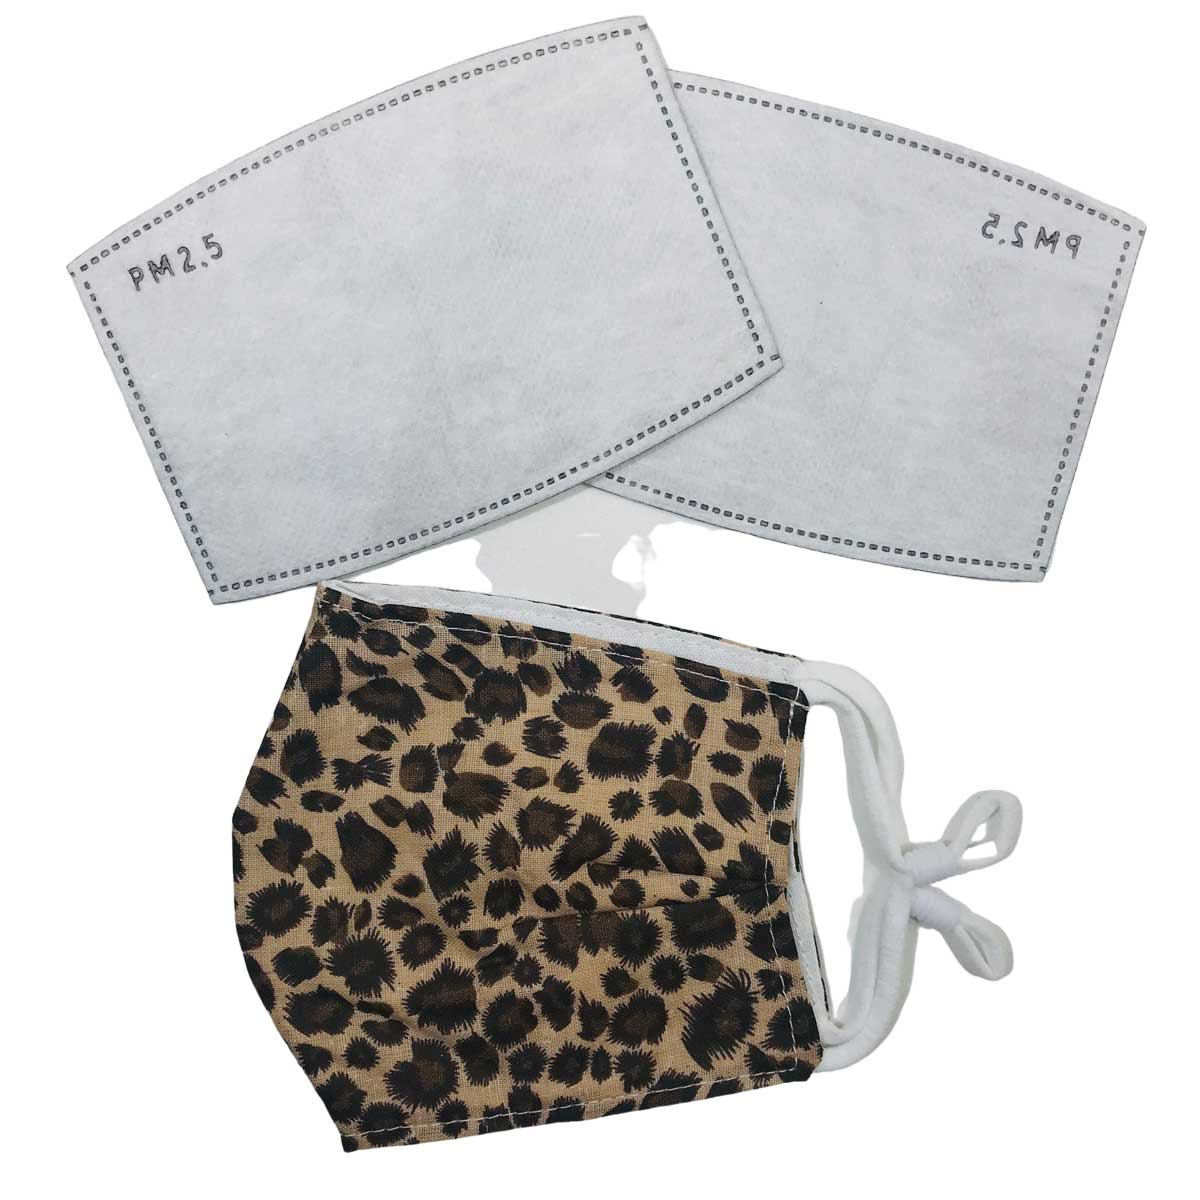 Protective Masks by Cate with Filters - D28 Leopard Camel